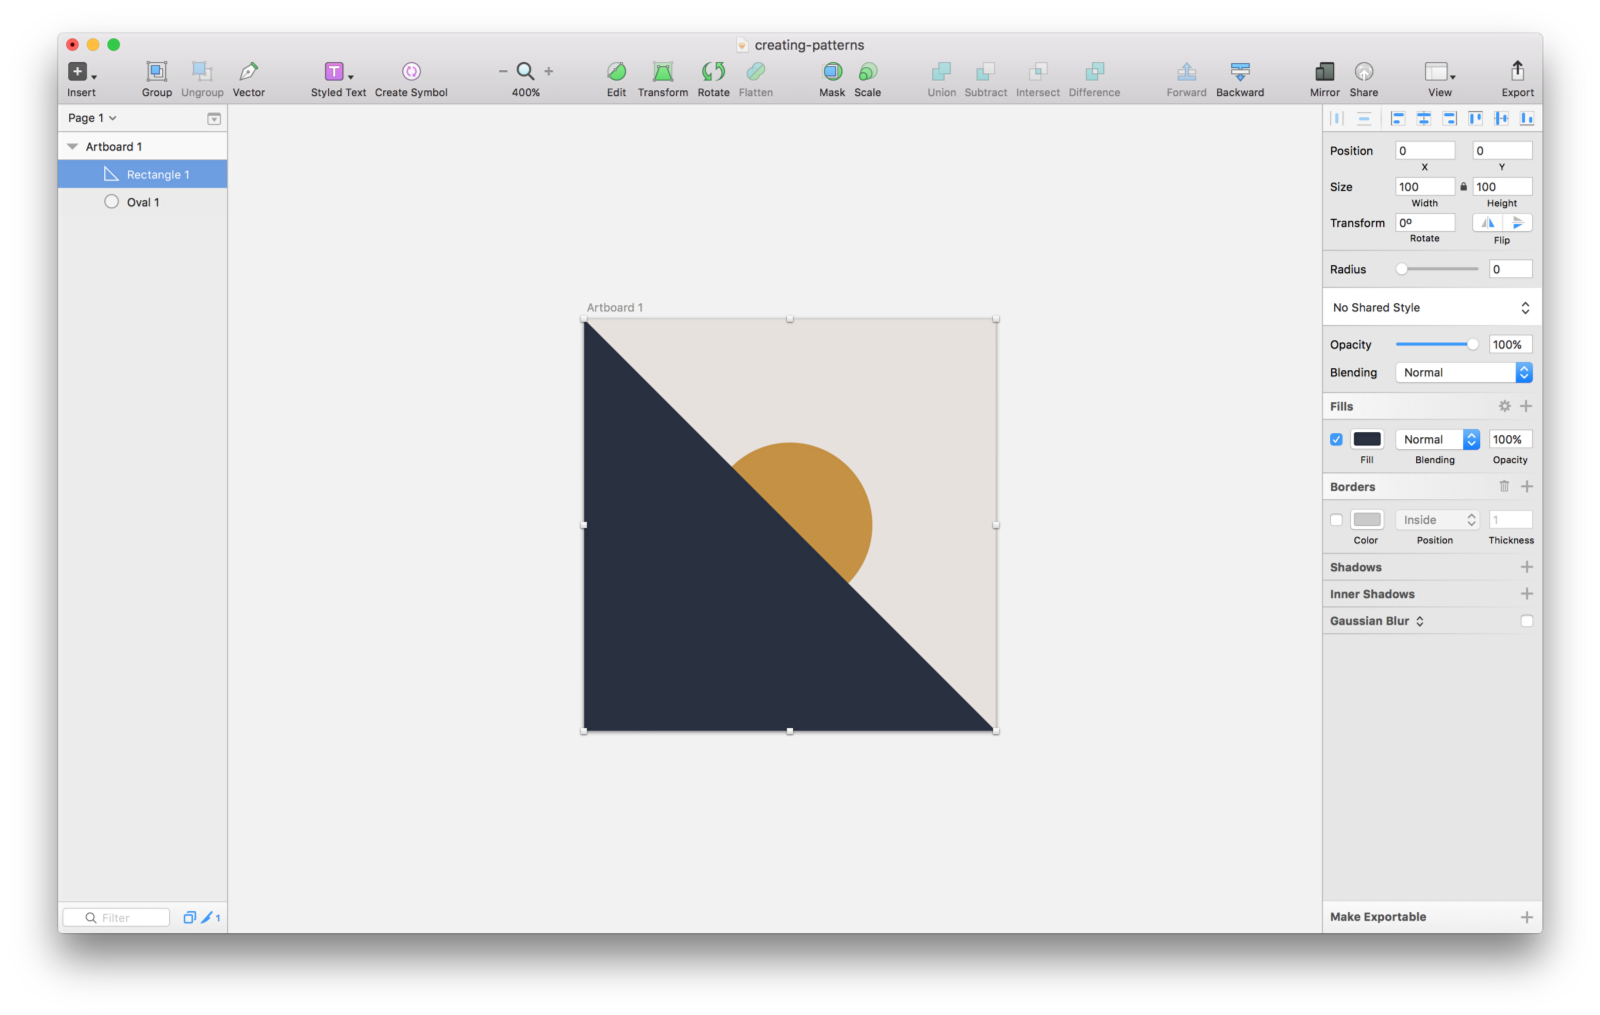 Checkered drawing plaid pattern. Creating patterns in sketch